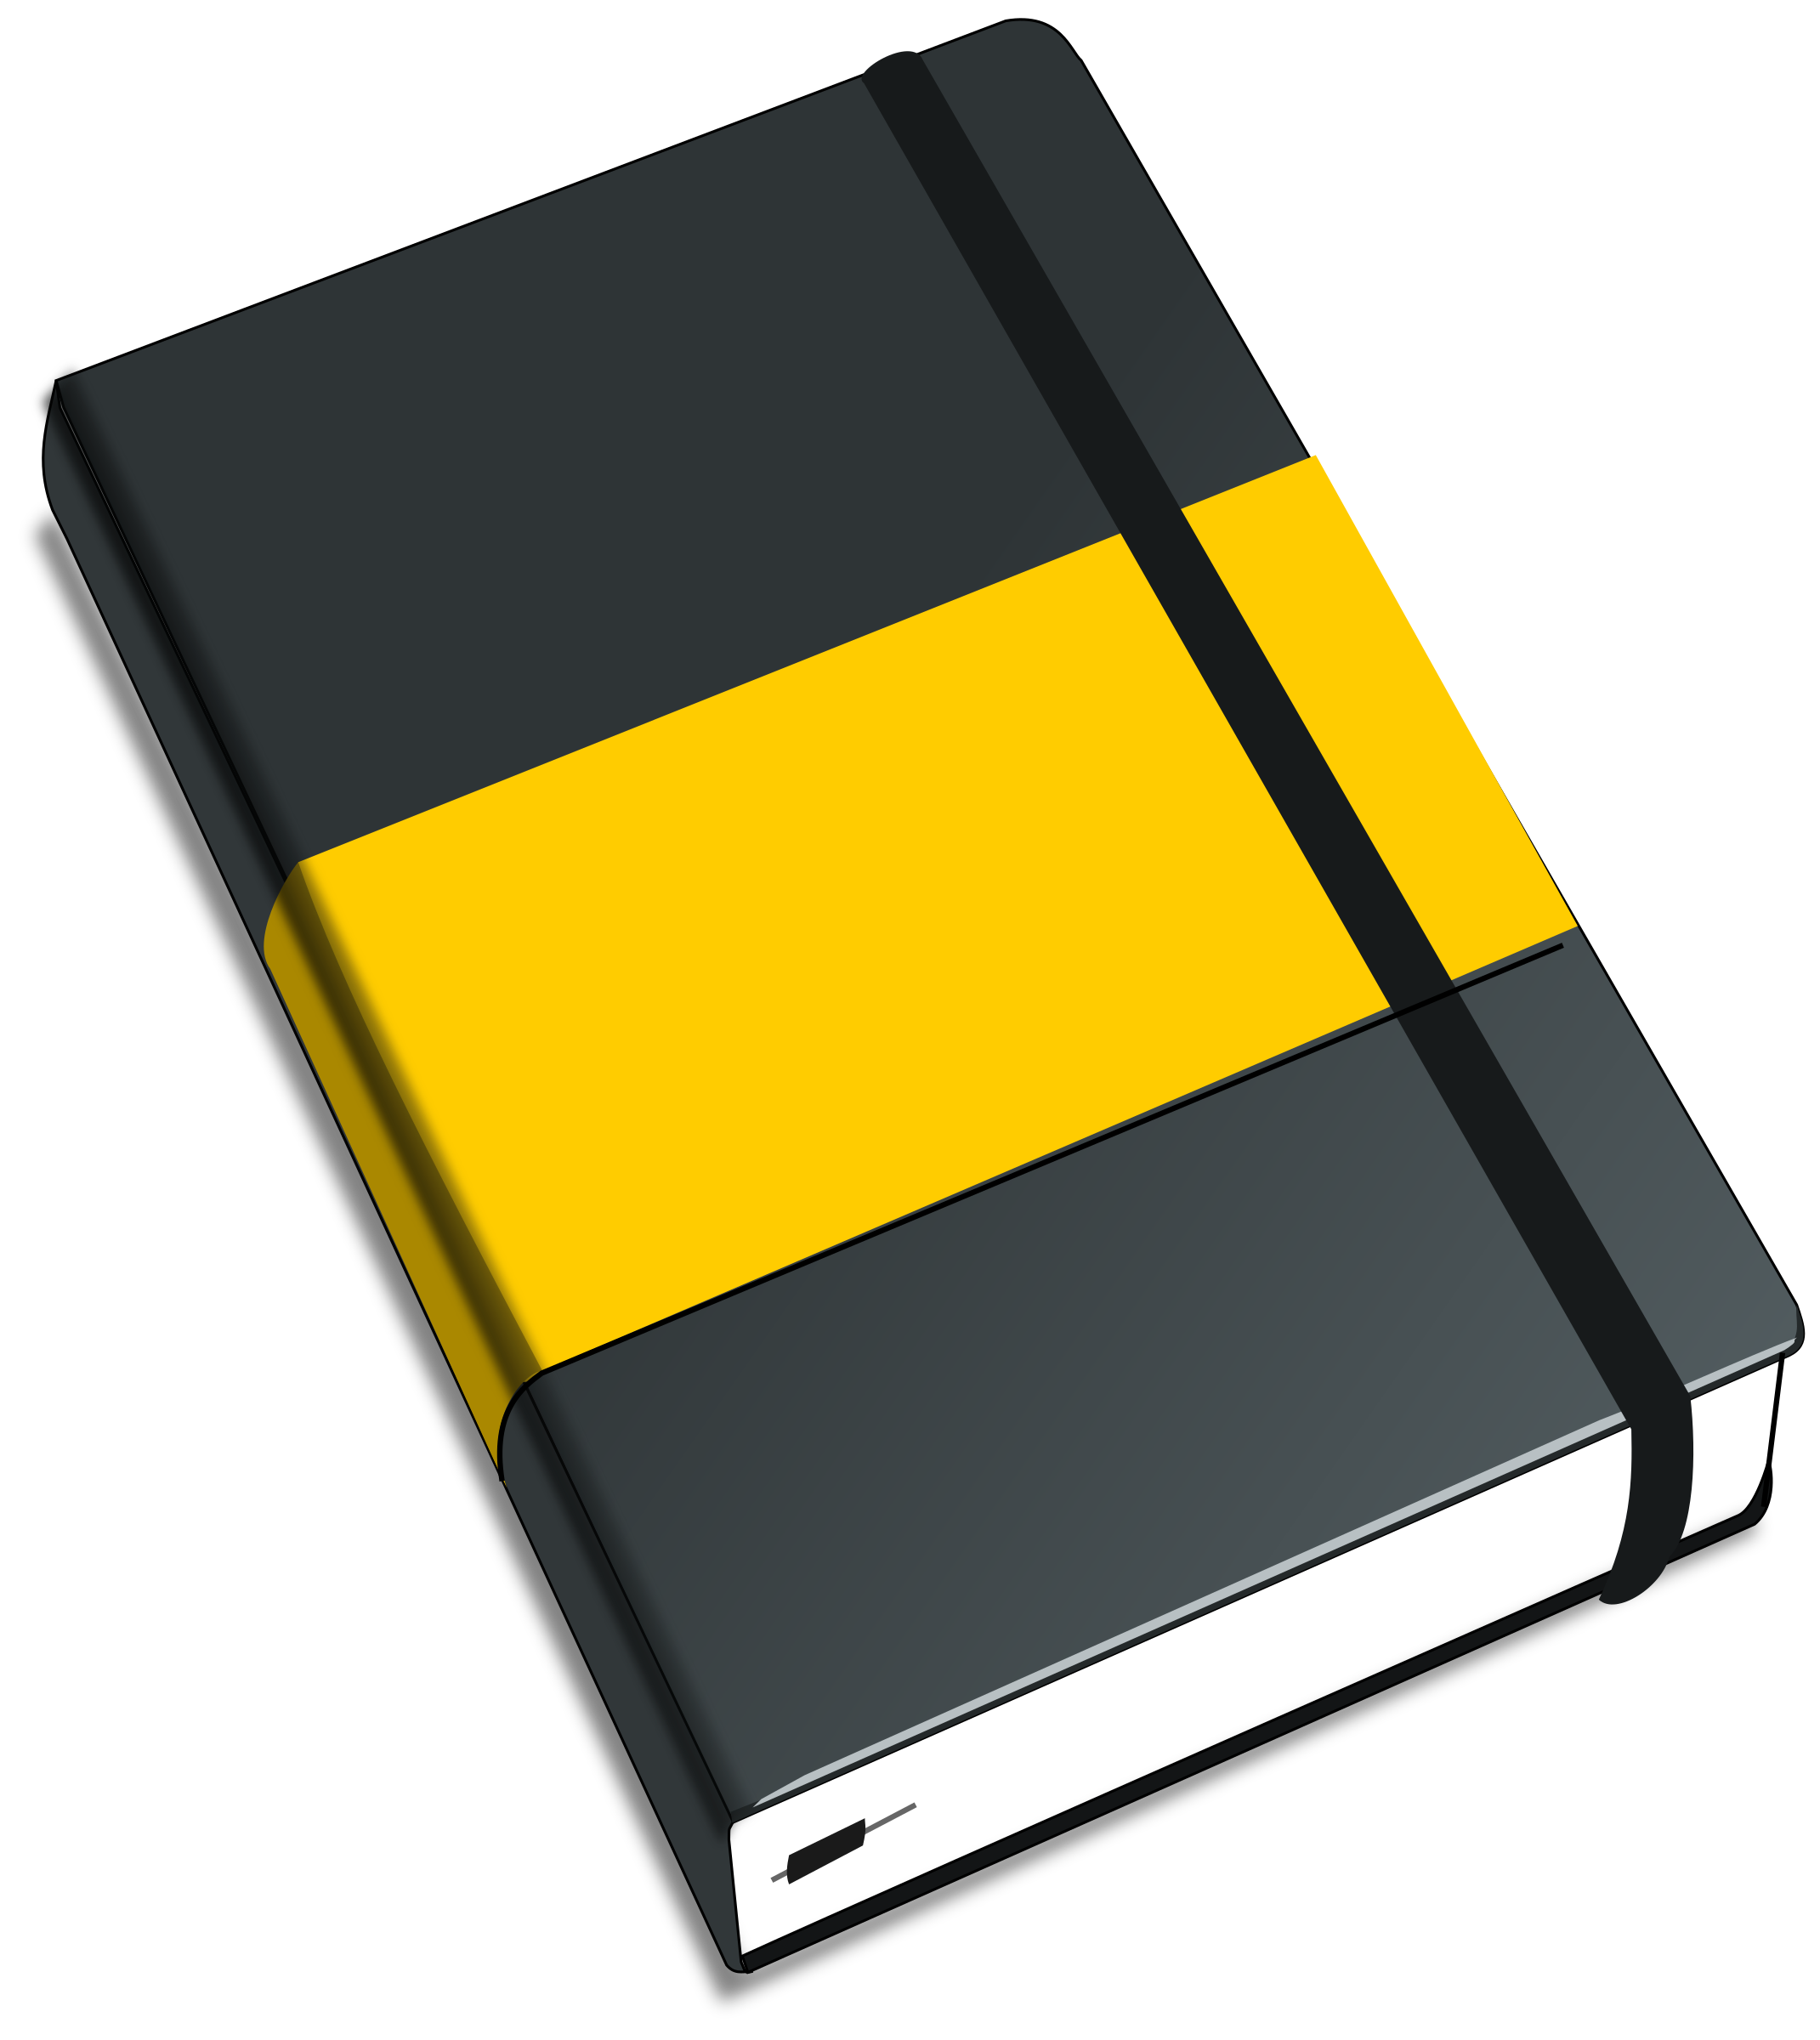 Moleskine by ghosthand